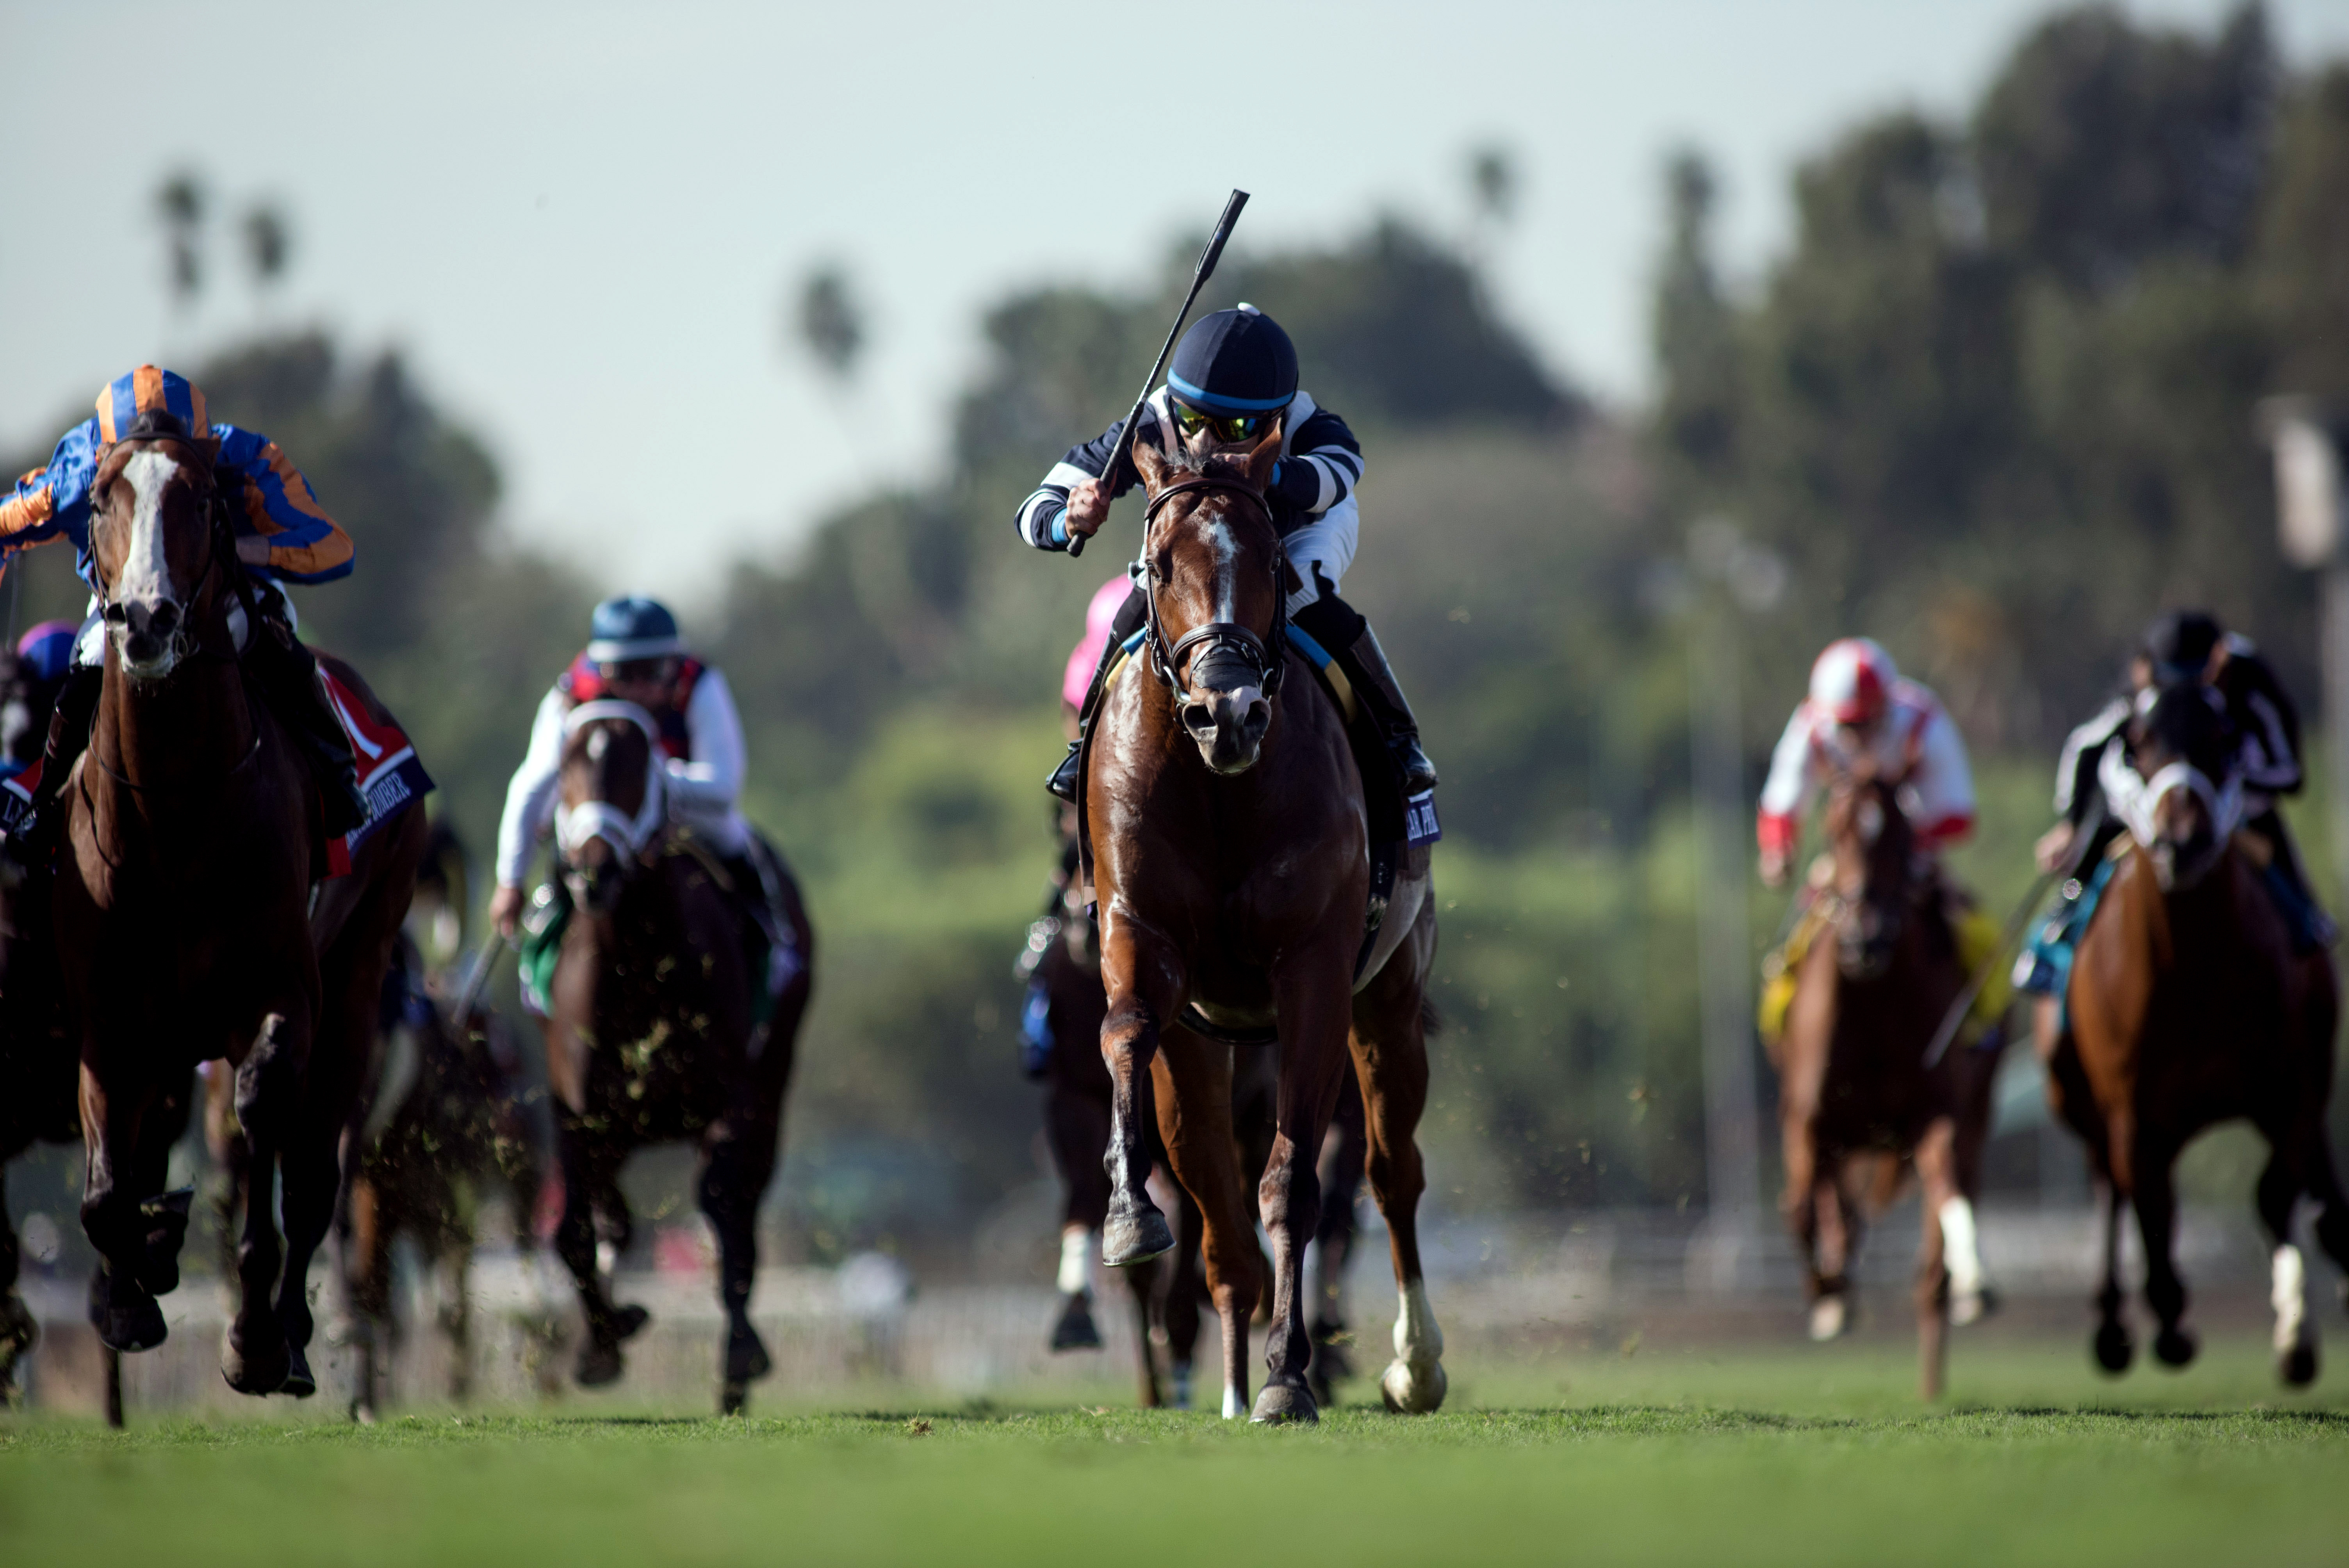 Breeders Cup Juvenile Turf Oscar Performance 2